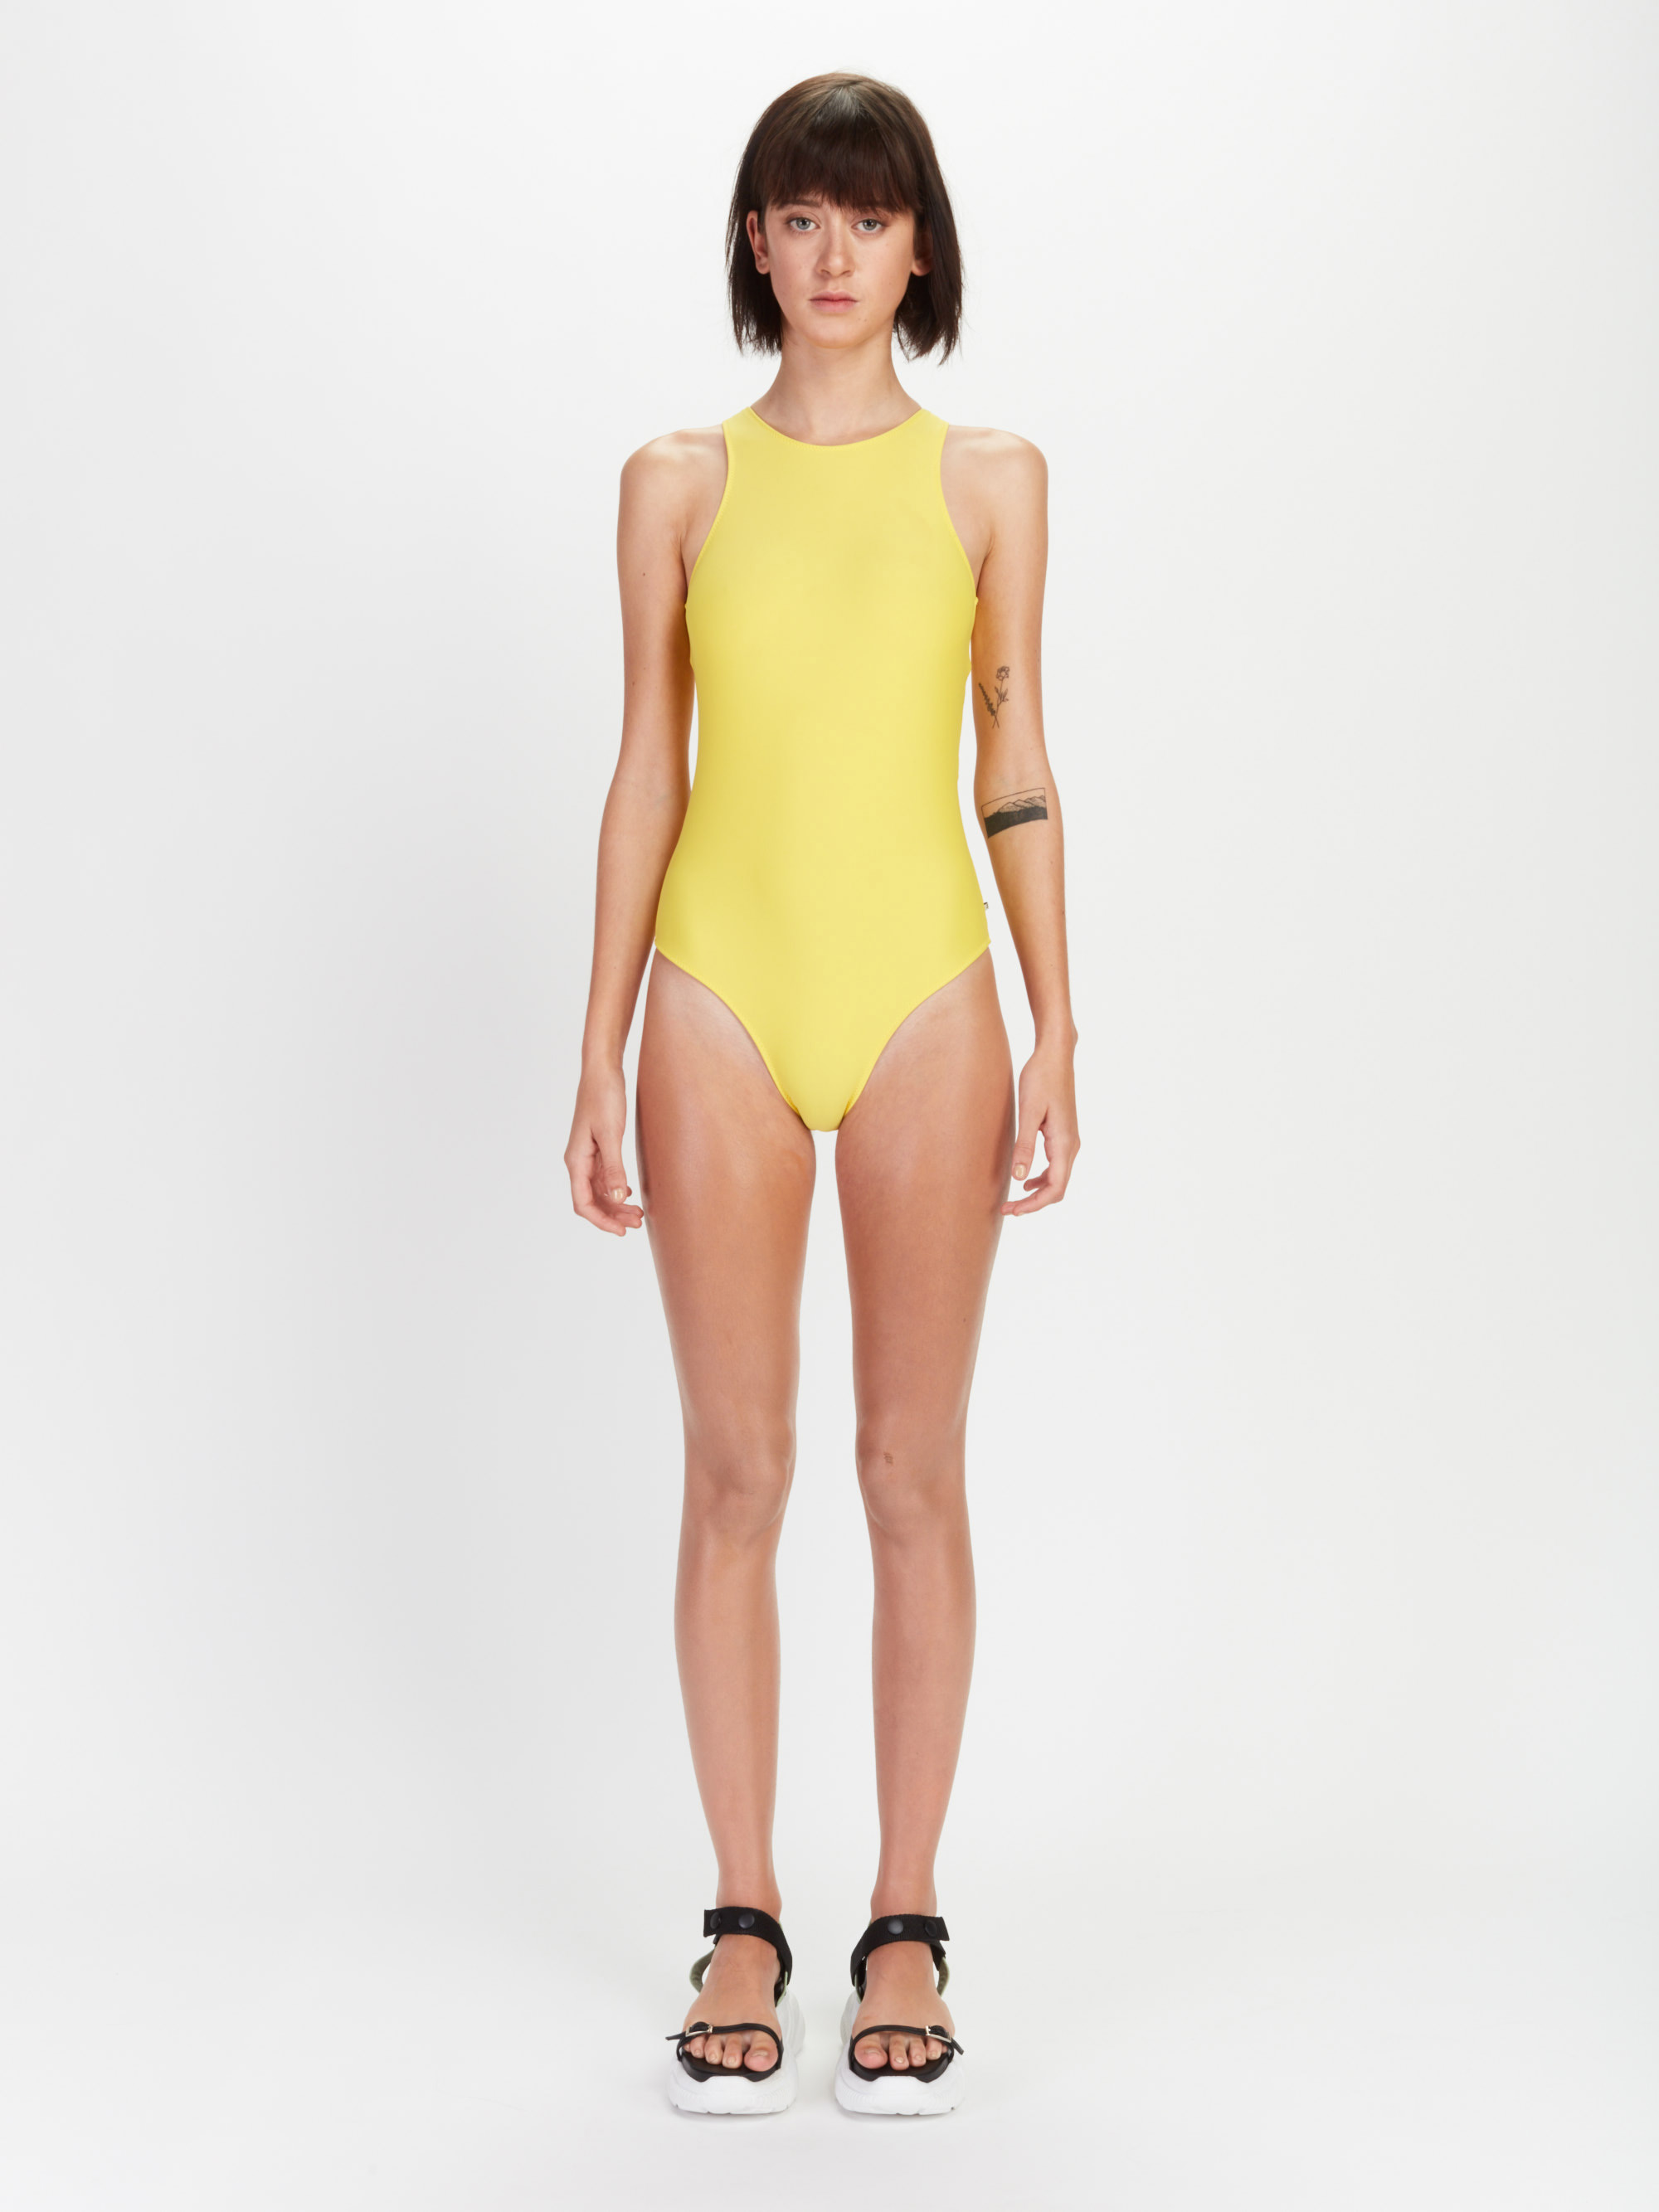 WHO SWIMSUIT